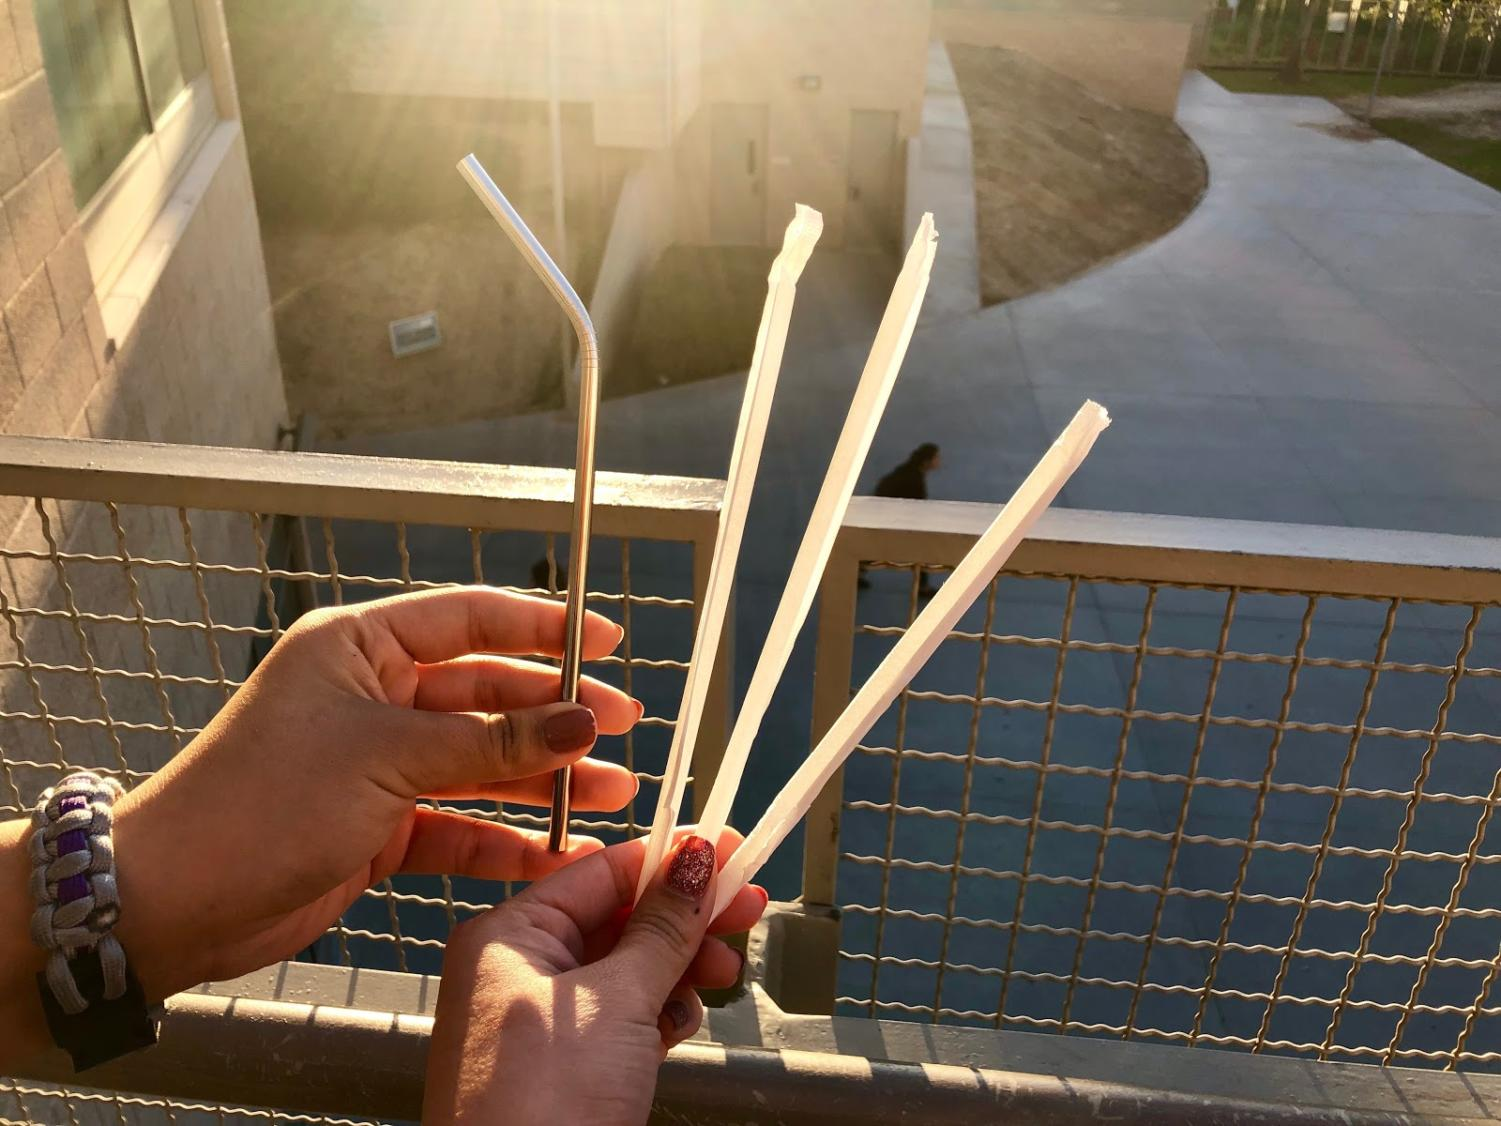 Metal vs. Plastic Straw, plastic only does more harm than good.